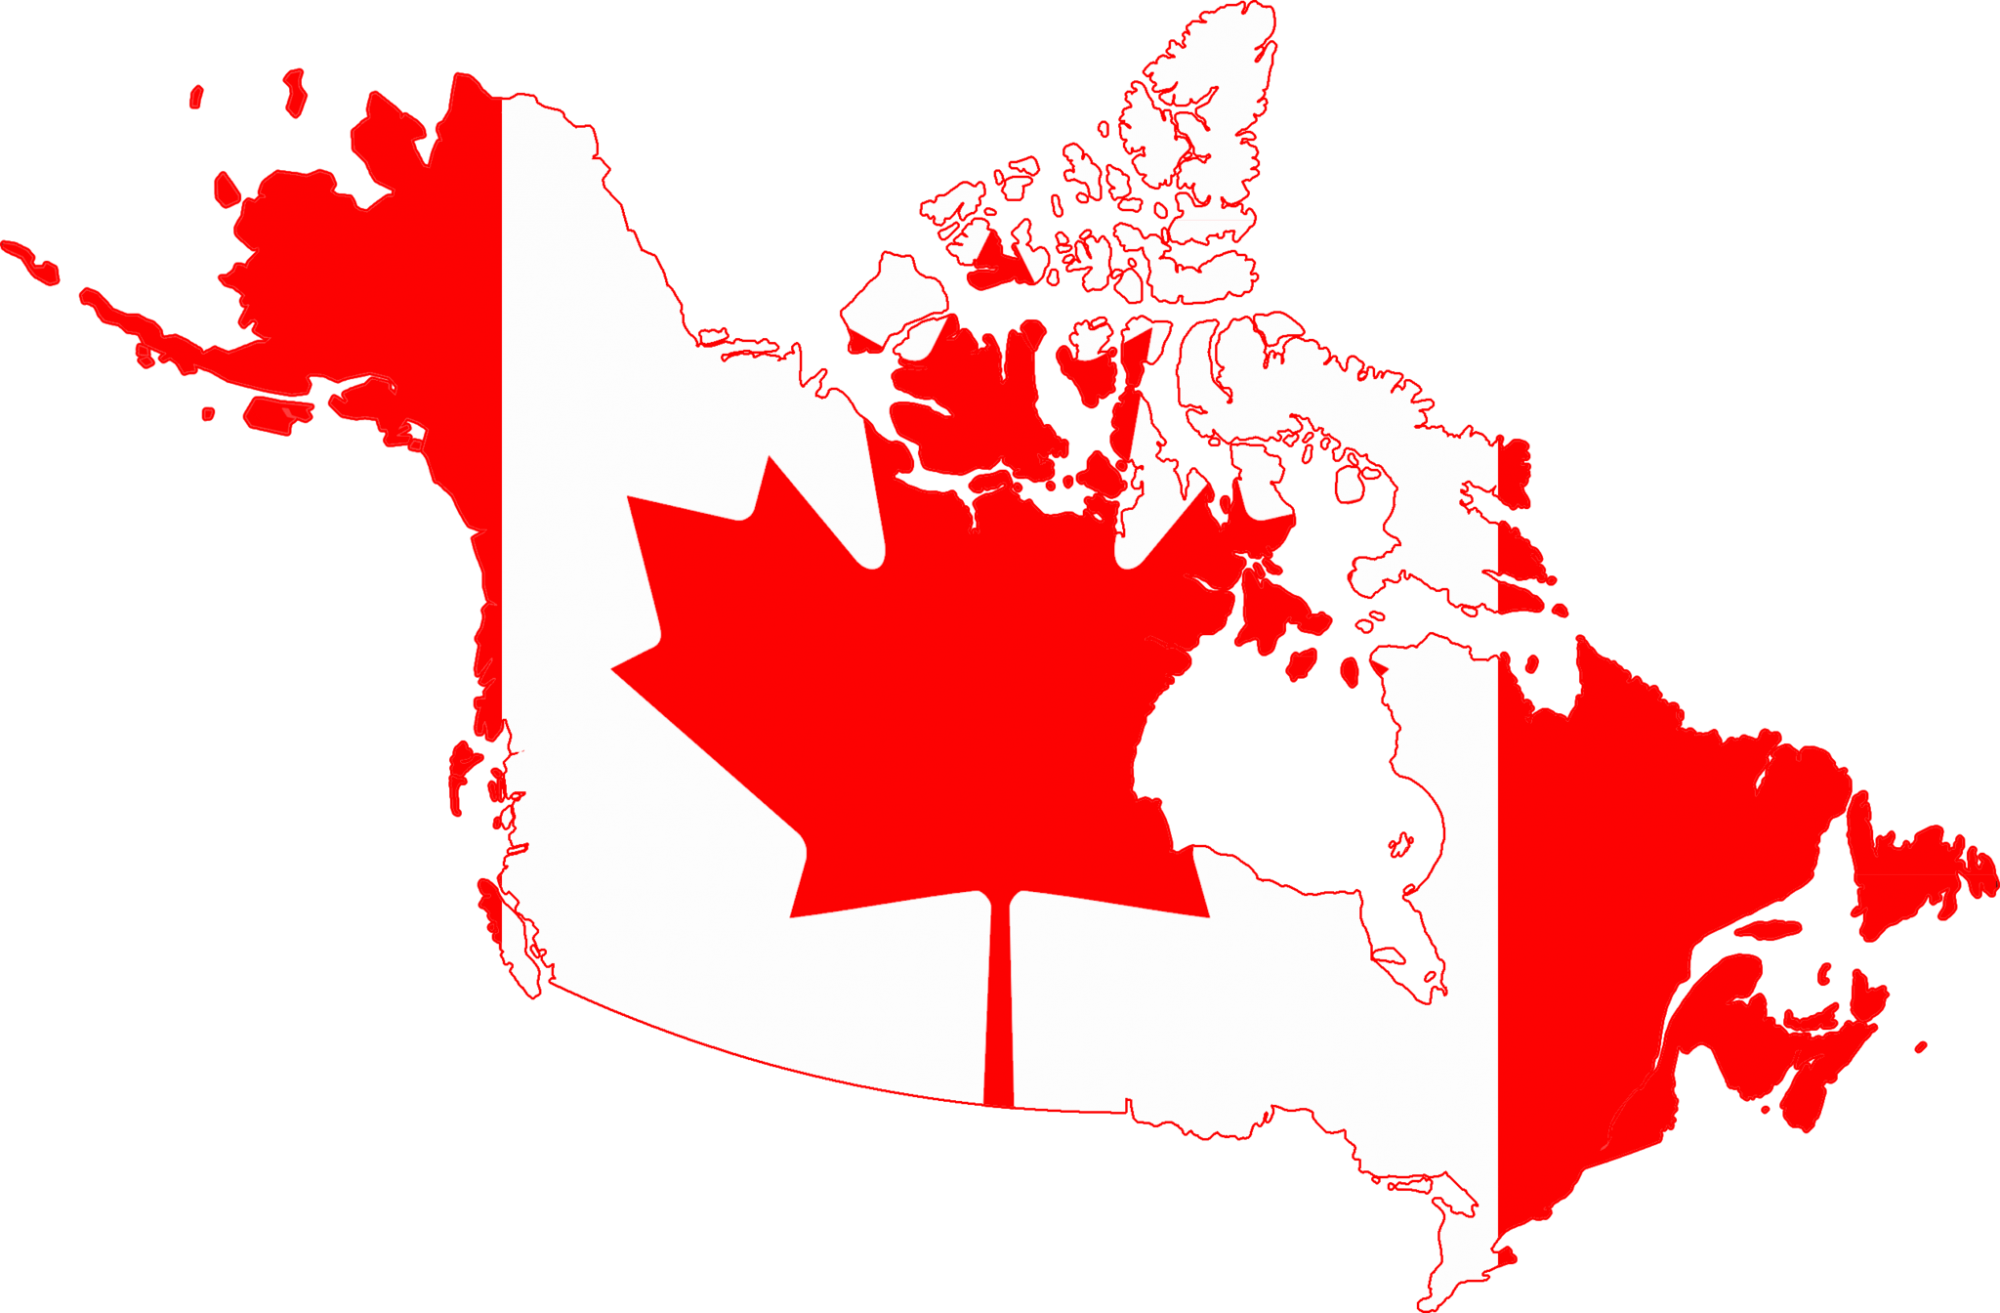 flag map of Canada by DrRandomFactor (Own work) [CC BY-SA 3.0 (http://creativecommons.org/licenses/by-sa/3.0)], via Wikimedia Commons